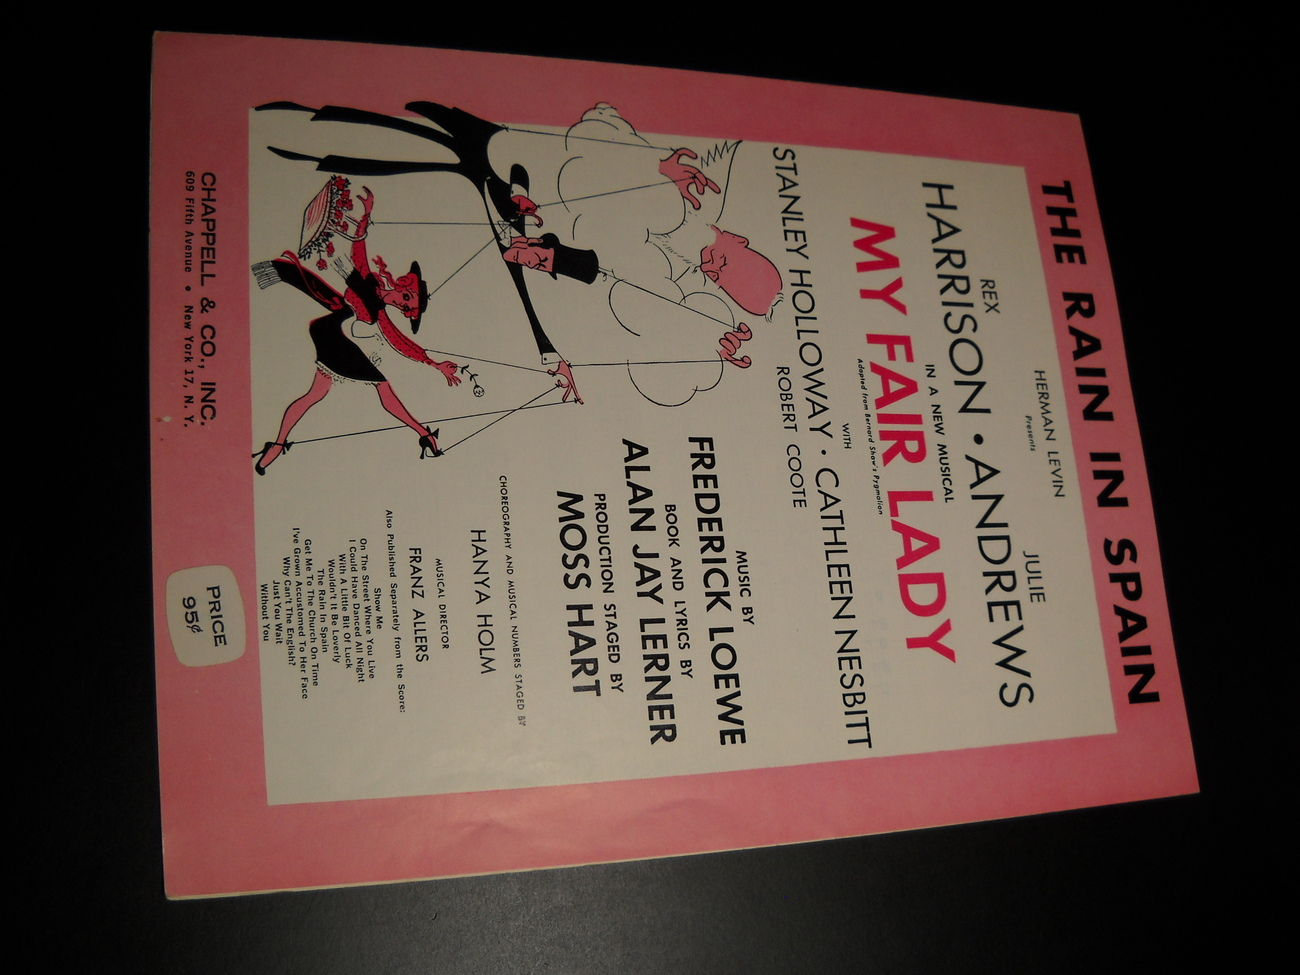 Sheet_music_the_rain_in_spain_my_fair_lady_harrison_andrews_1956_chappell__01